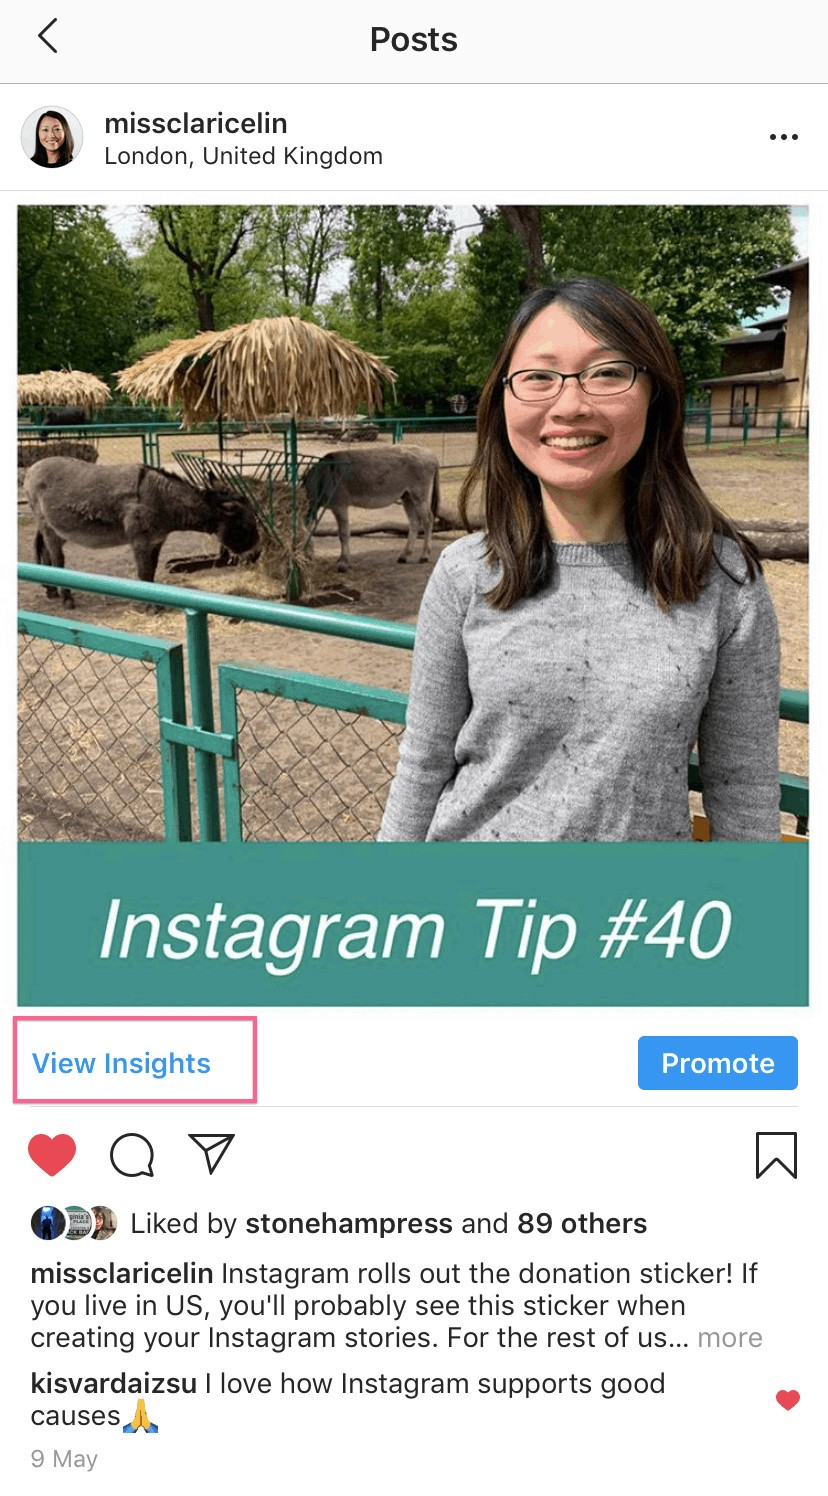 Instagram Post View Insights